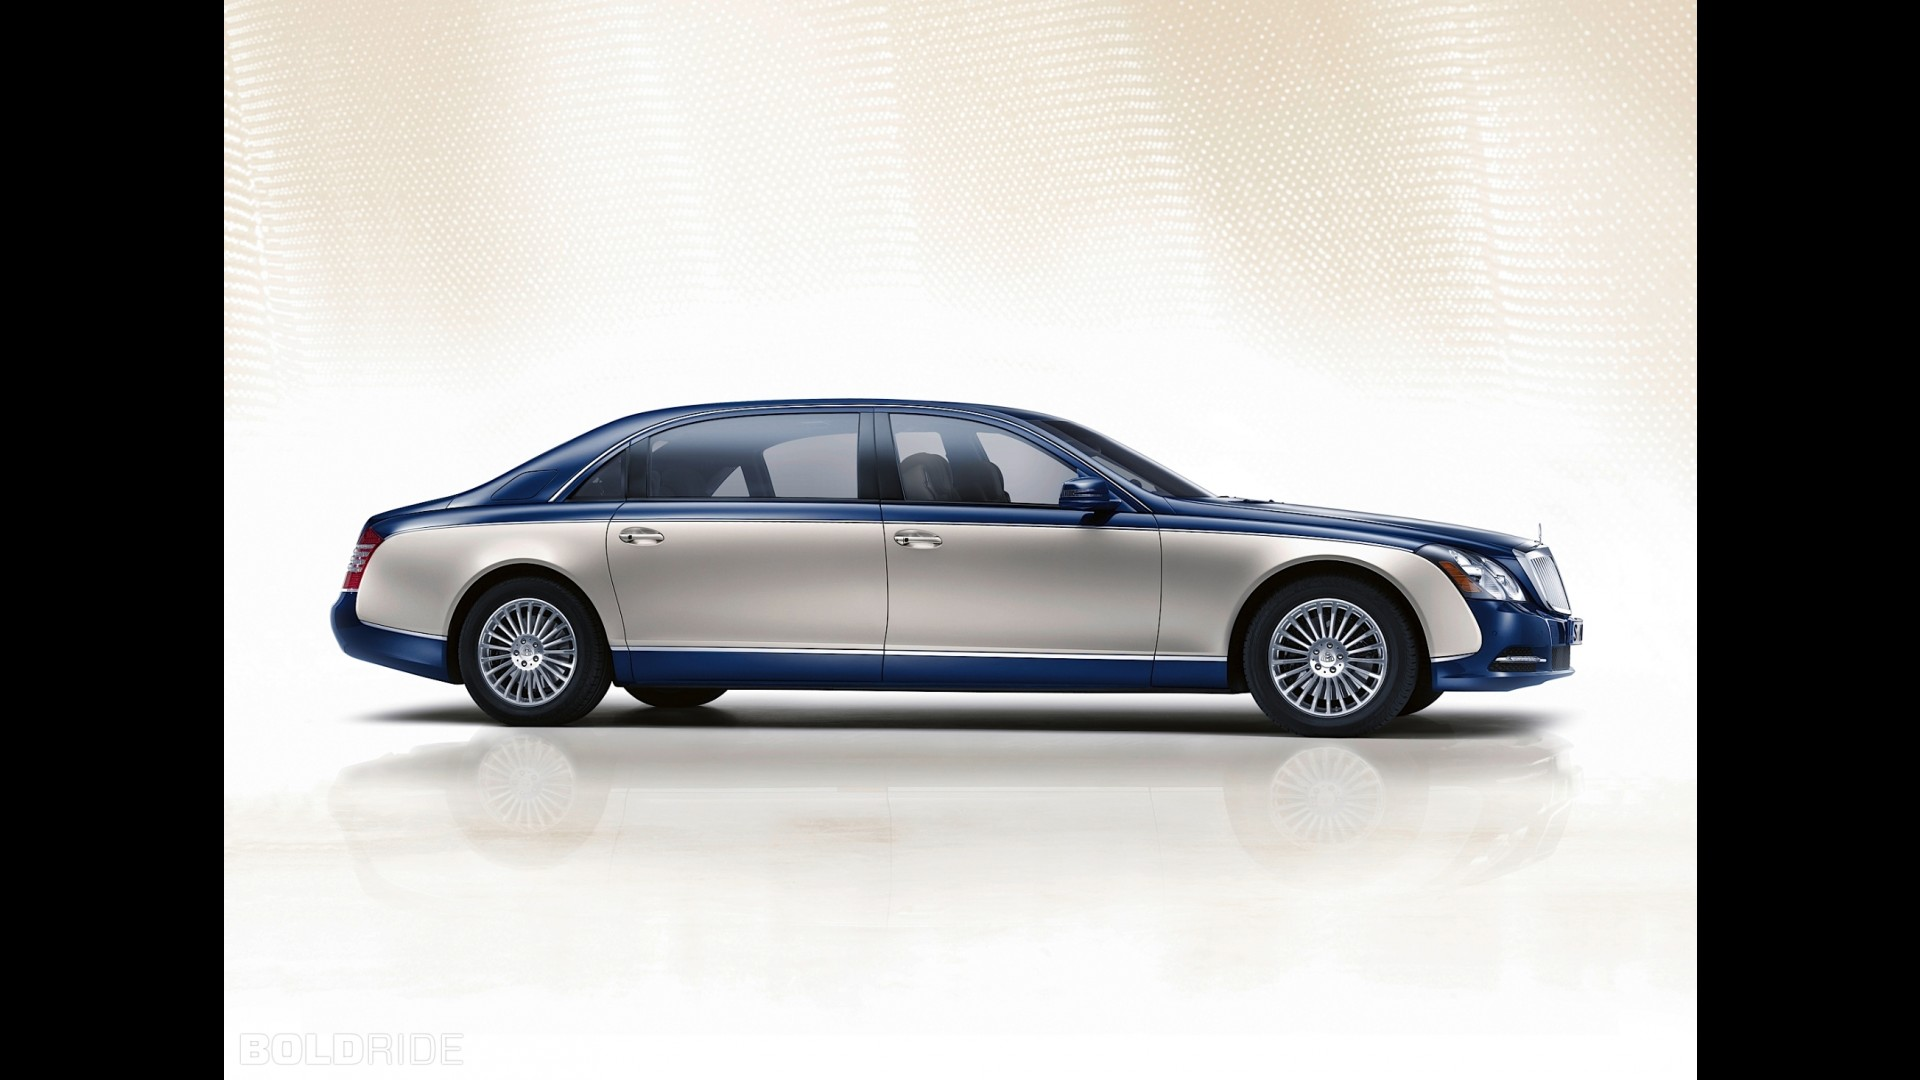 Maybach 62 S HD Wallpapers Download free images and photos [musssic.tk]